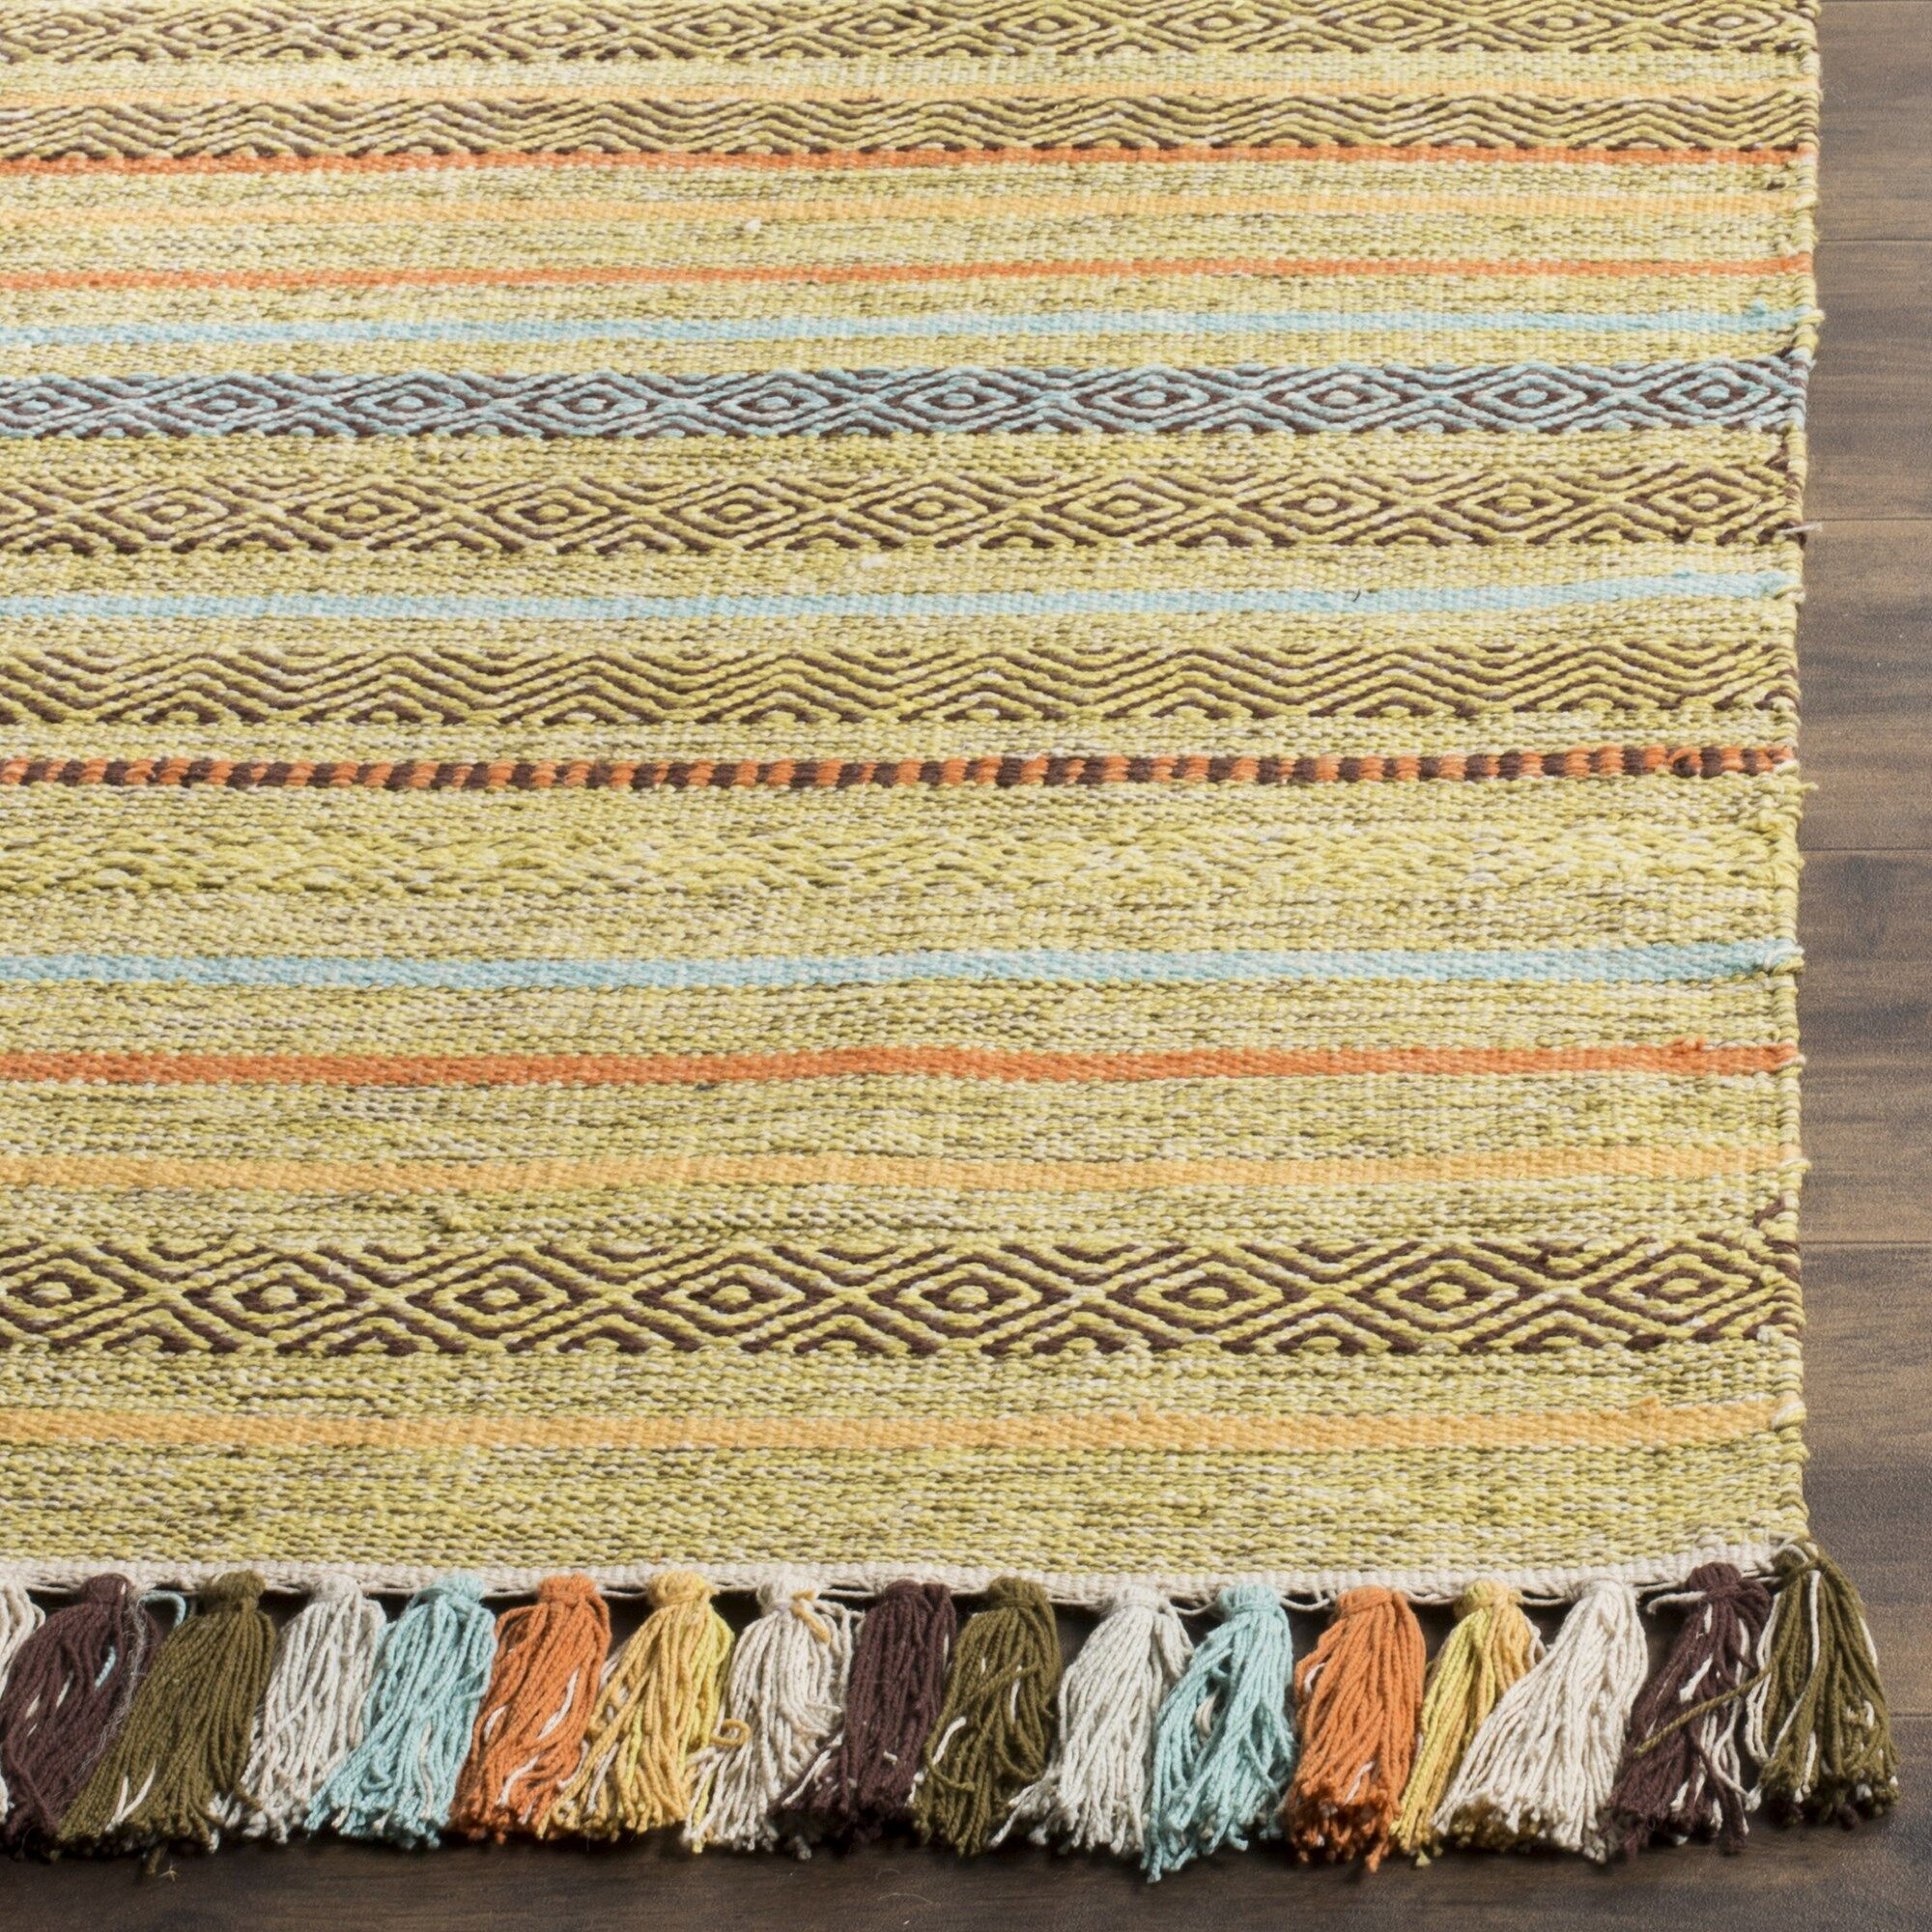 Trenton Hand-Woven Cotton Beige Area Rug Rug Size: Rectangle 5' x 8'